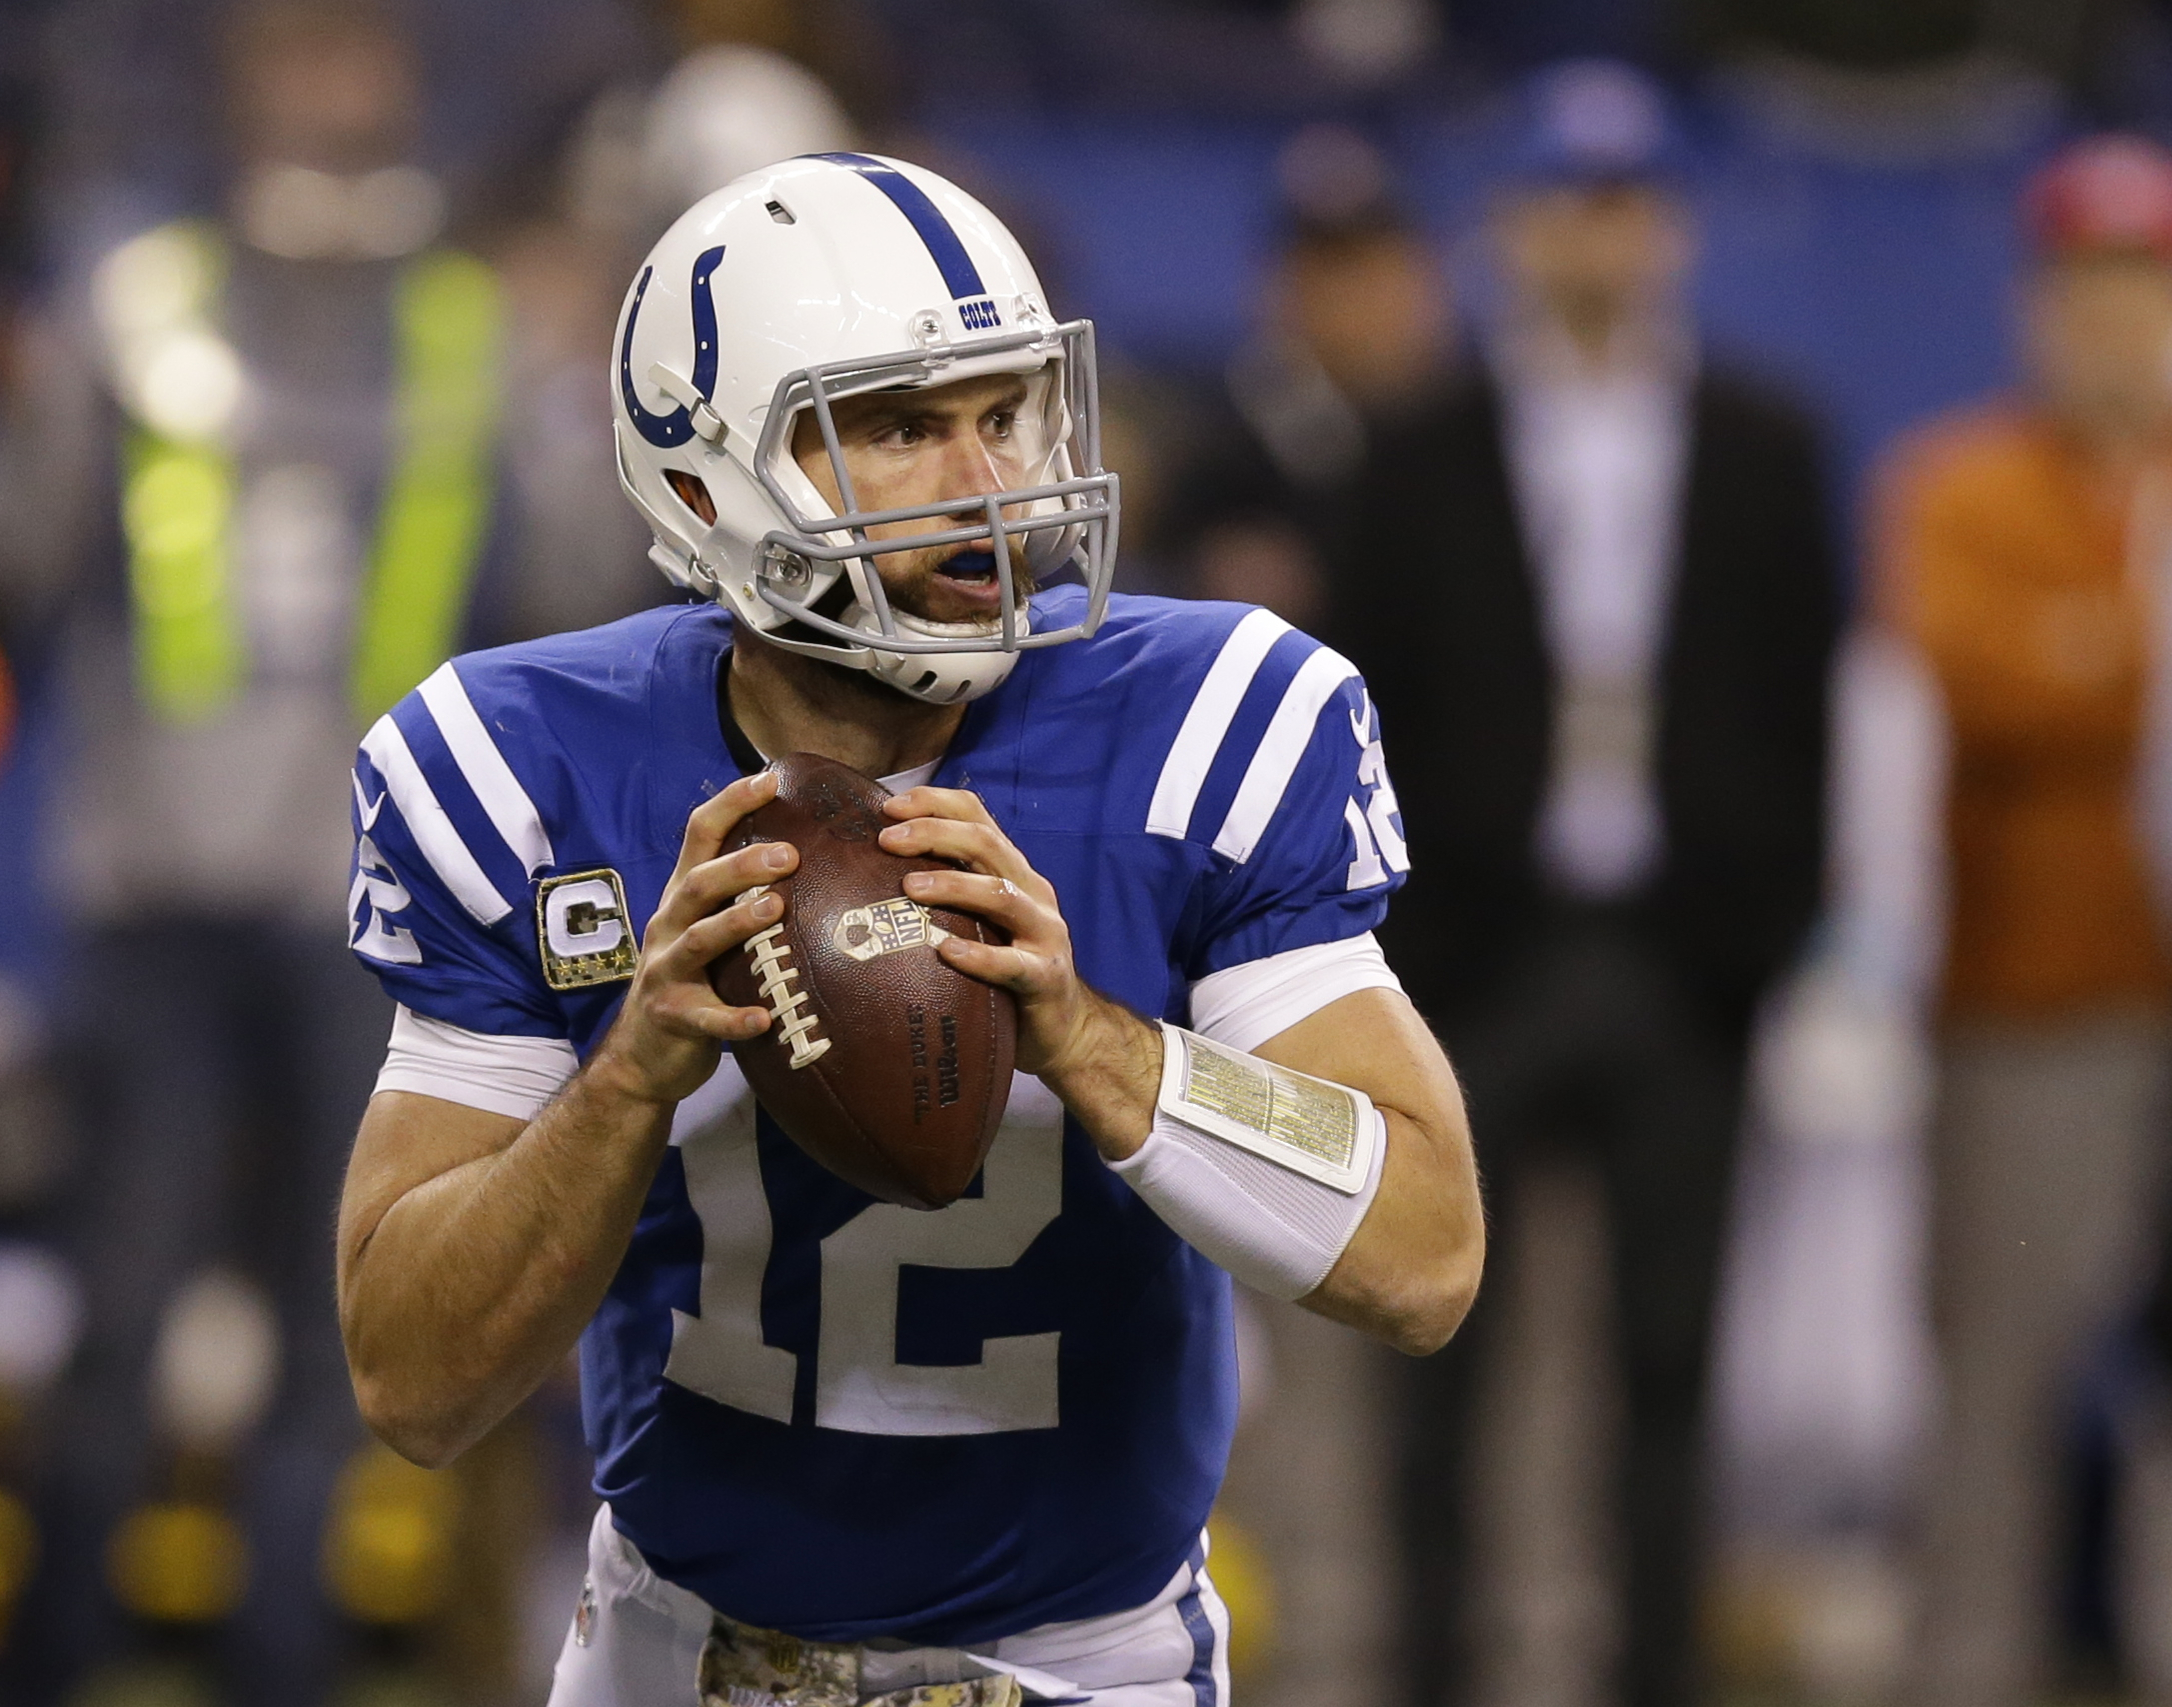 FILE - In this Nov. 8, 2015, file photo, Indianapolis Colts' Andrew Luck (12) looks to throw during the second half of an NFL football game against the Denver Broncos, in Indianapolis. Luck has signed a new contract with the Indianapolis Colts that covers